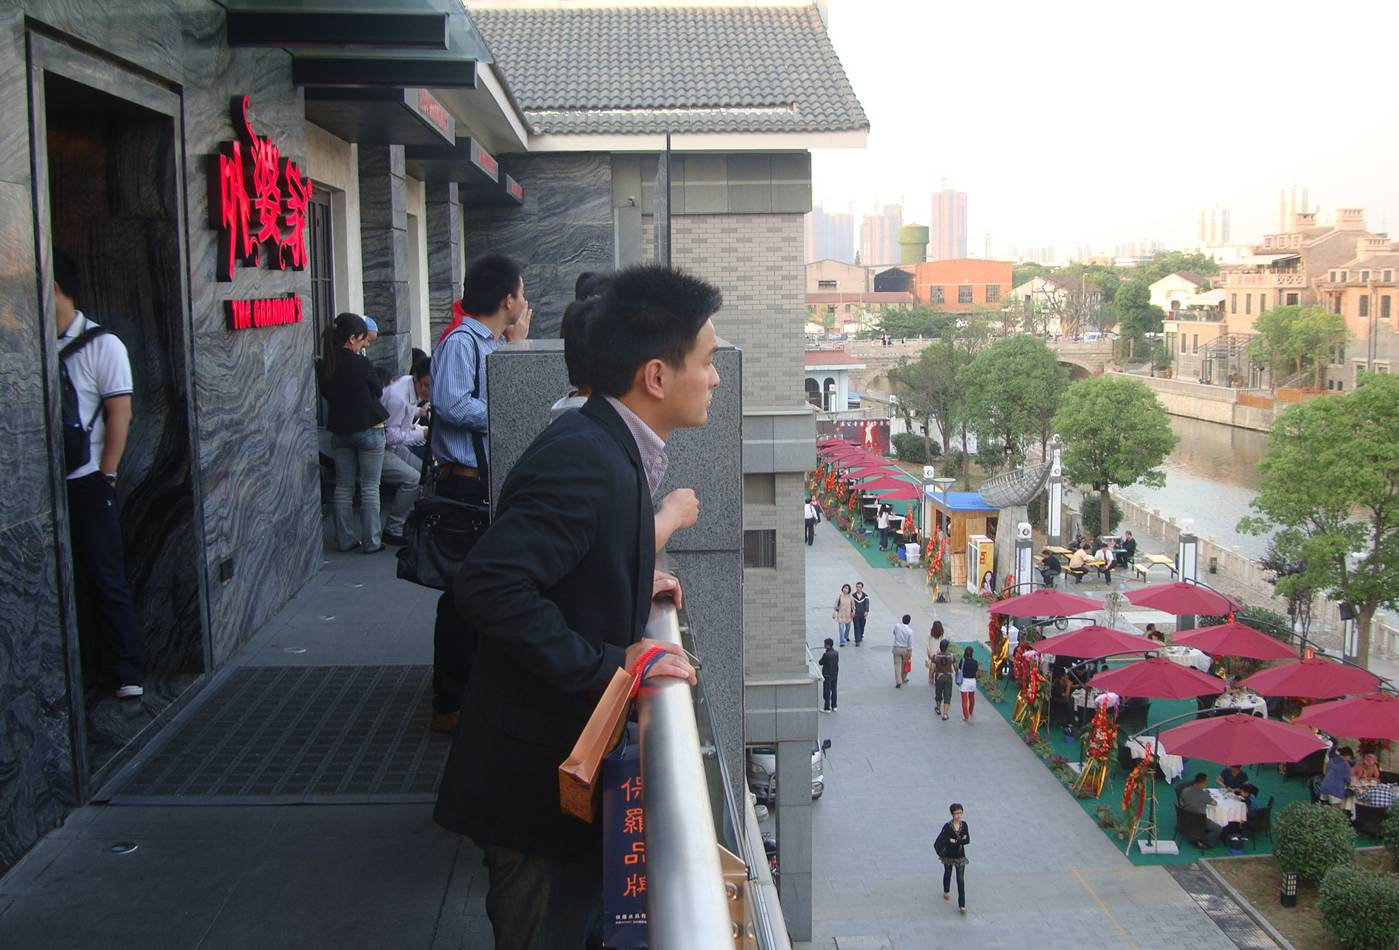 Picture:  The balcony entrance to Grandmother's House Restaurant, Wuxi, China